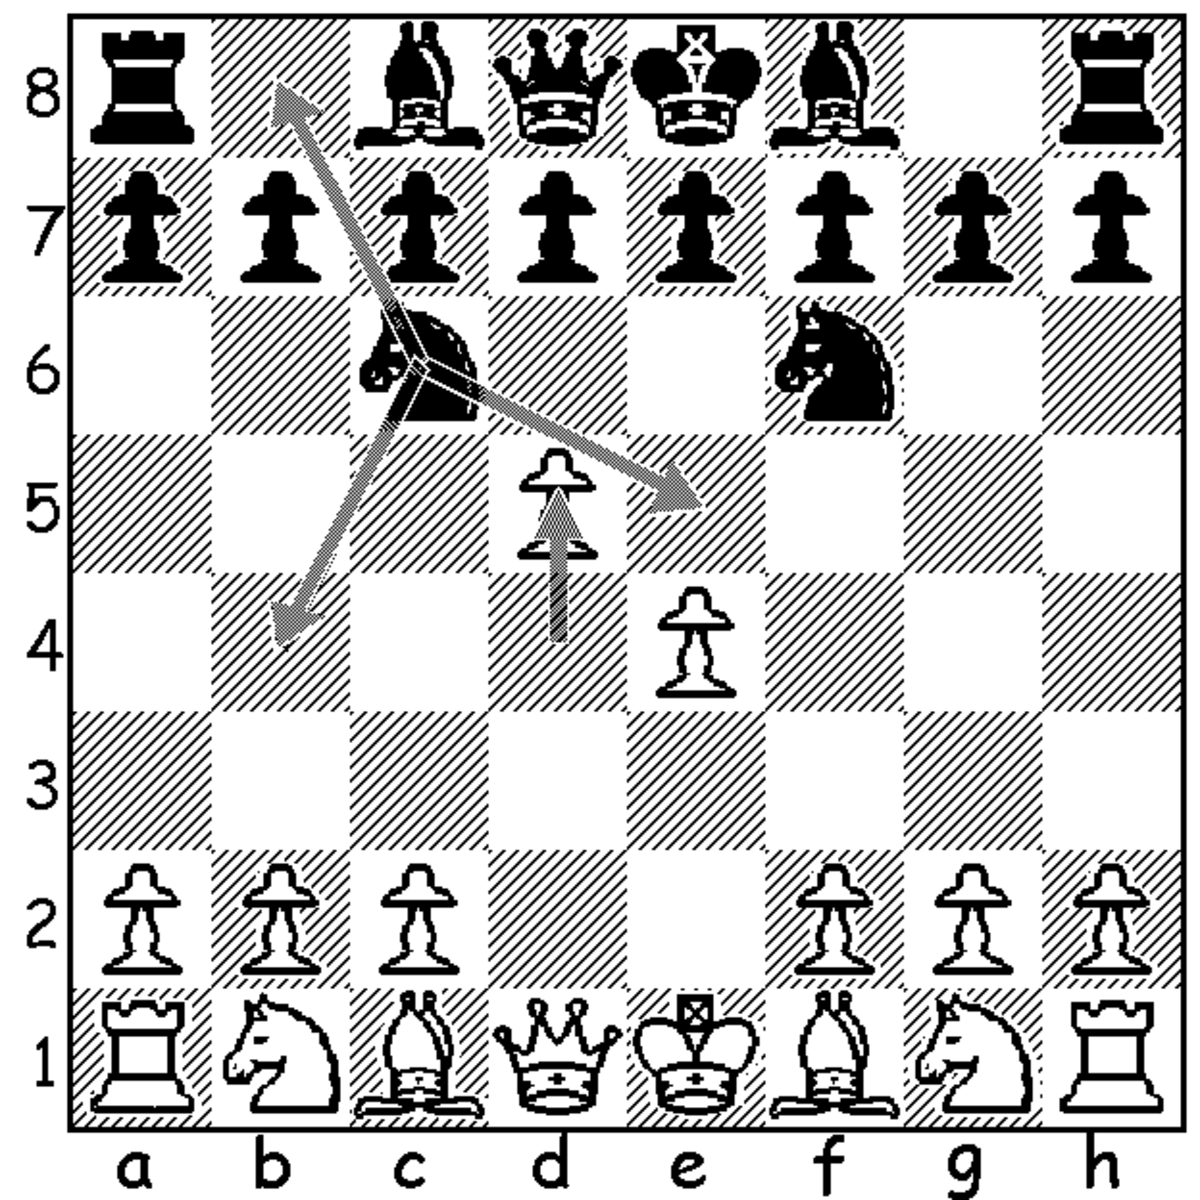 Black's three most reasonable third move options in response to 3.d5. They are, 3...Ne5, 3...Nb8, and 3...Nb4.